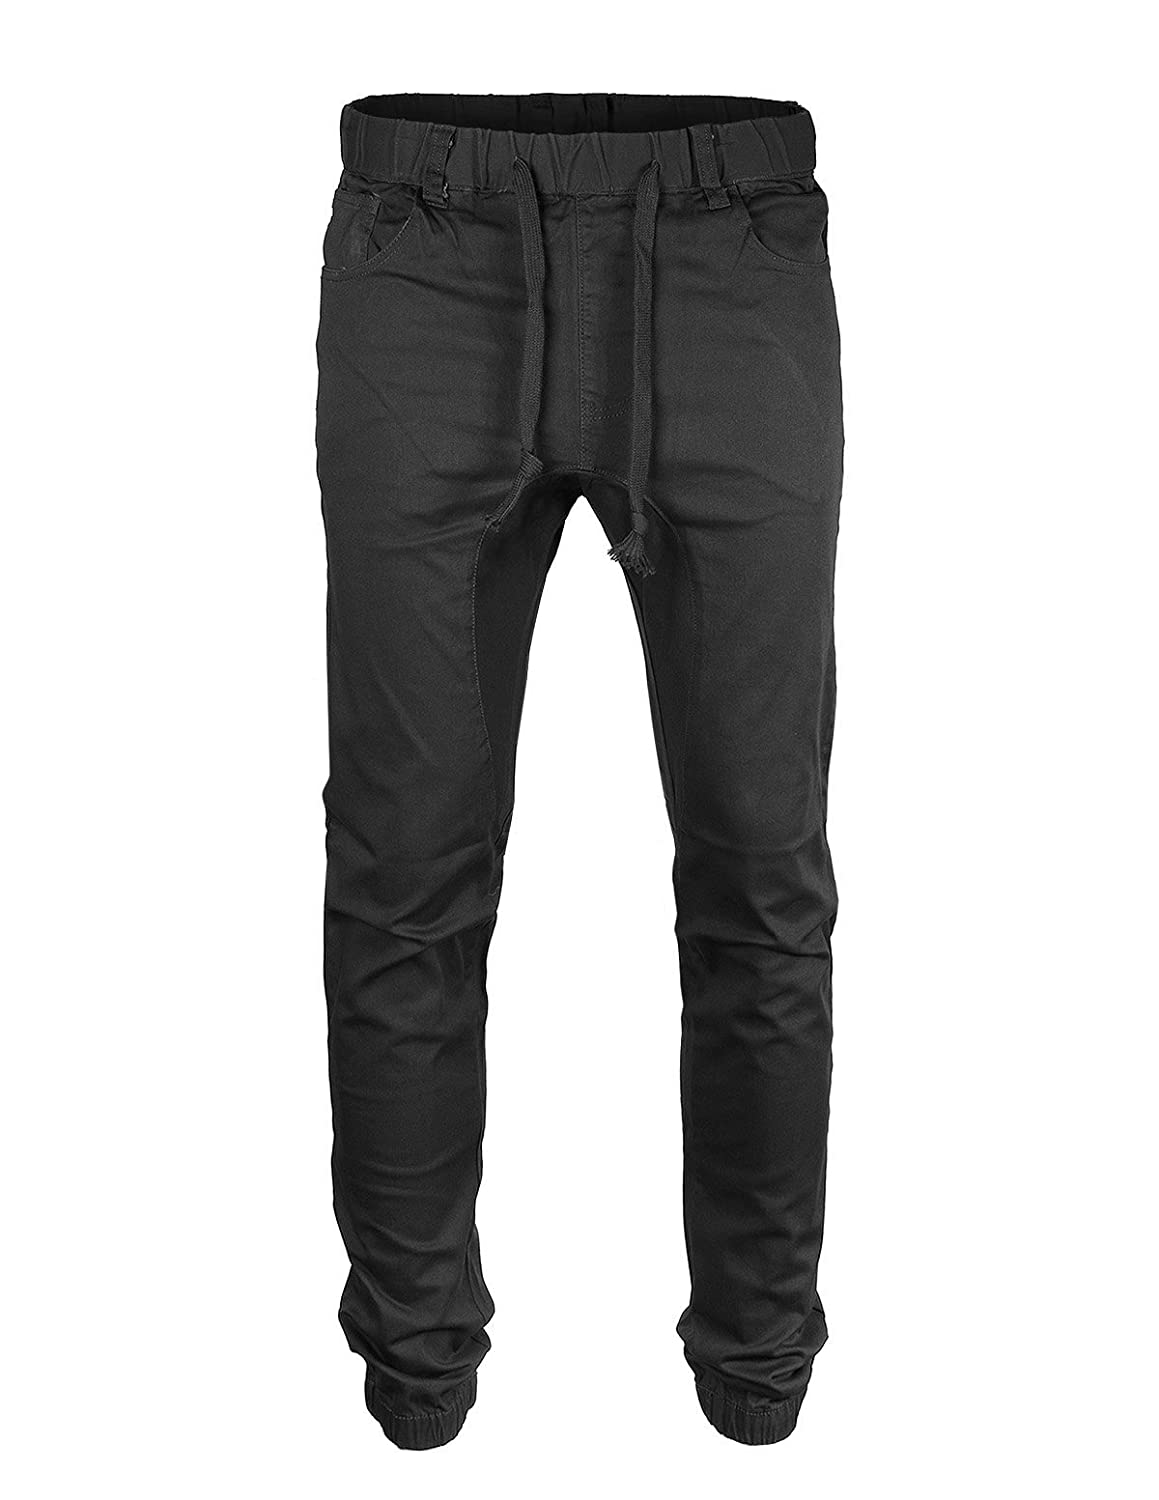 d3eb9b2efd Elastic cuffed bottom hem and waist with drawstrings. Drop crotch jogger  with two side pockets and two back pockets. Sizing = SMALL: WAIST 30-32 |  MEDIUM: ...